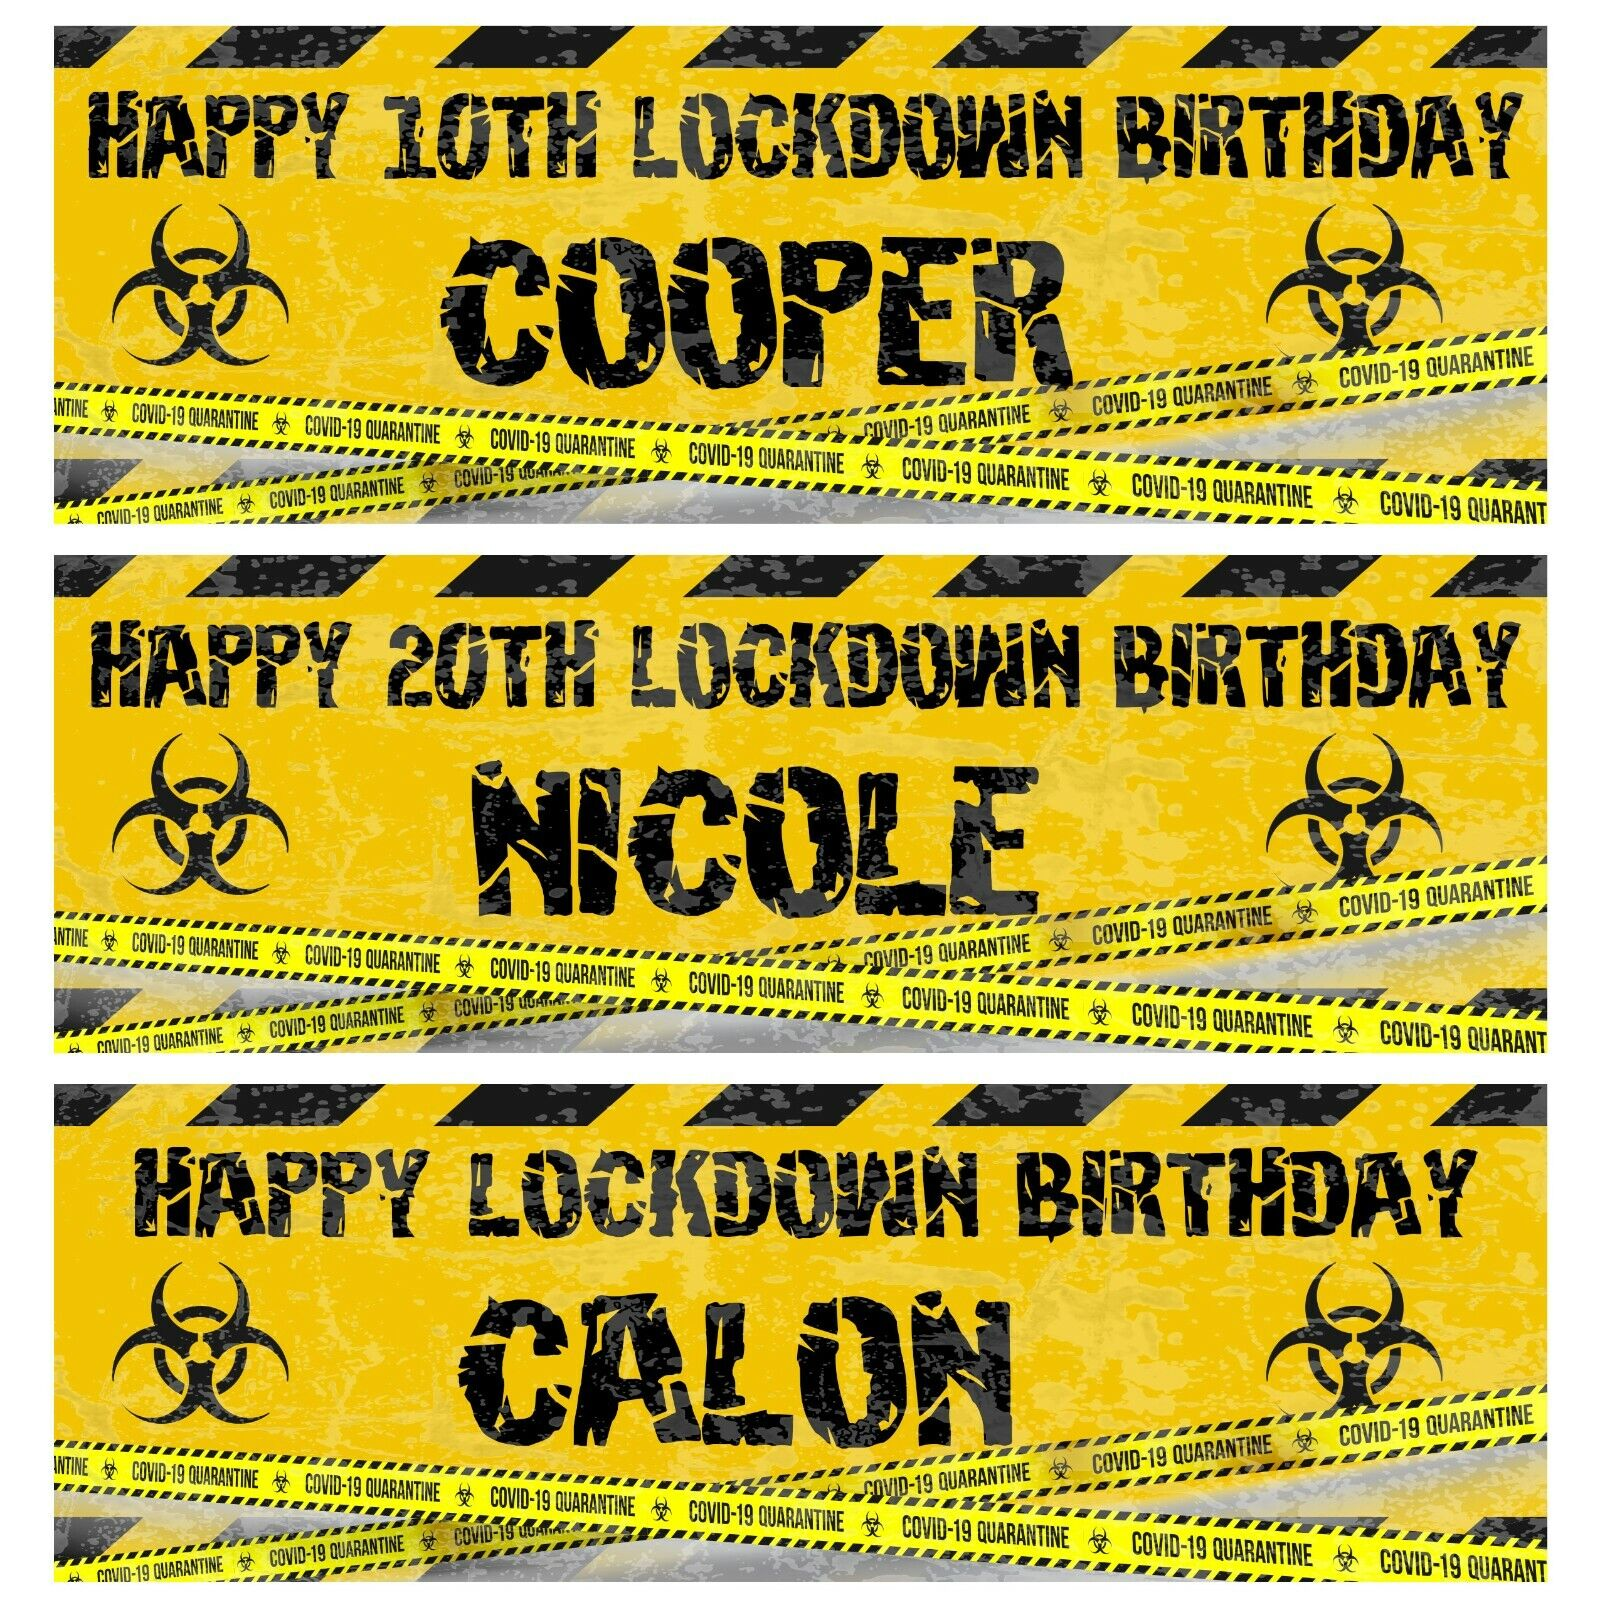 2 personalised birthday banner Lockdown 2021 fun party poster From £3.99 @ eBay